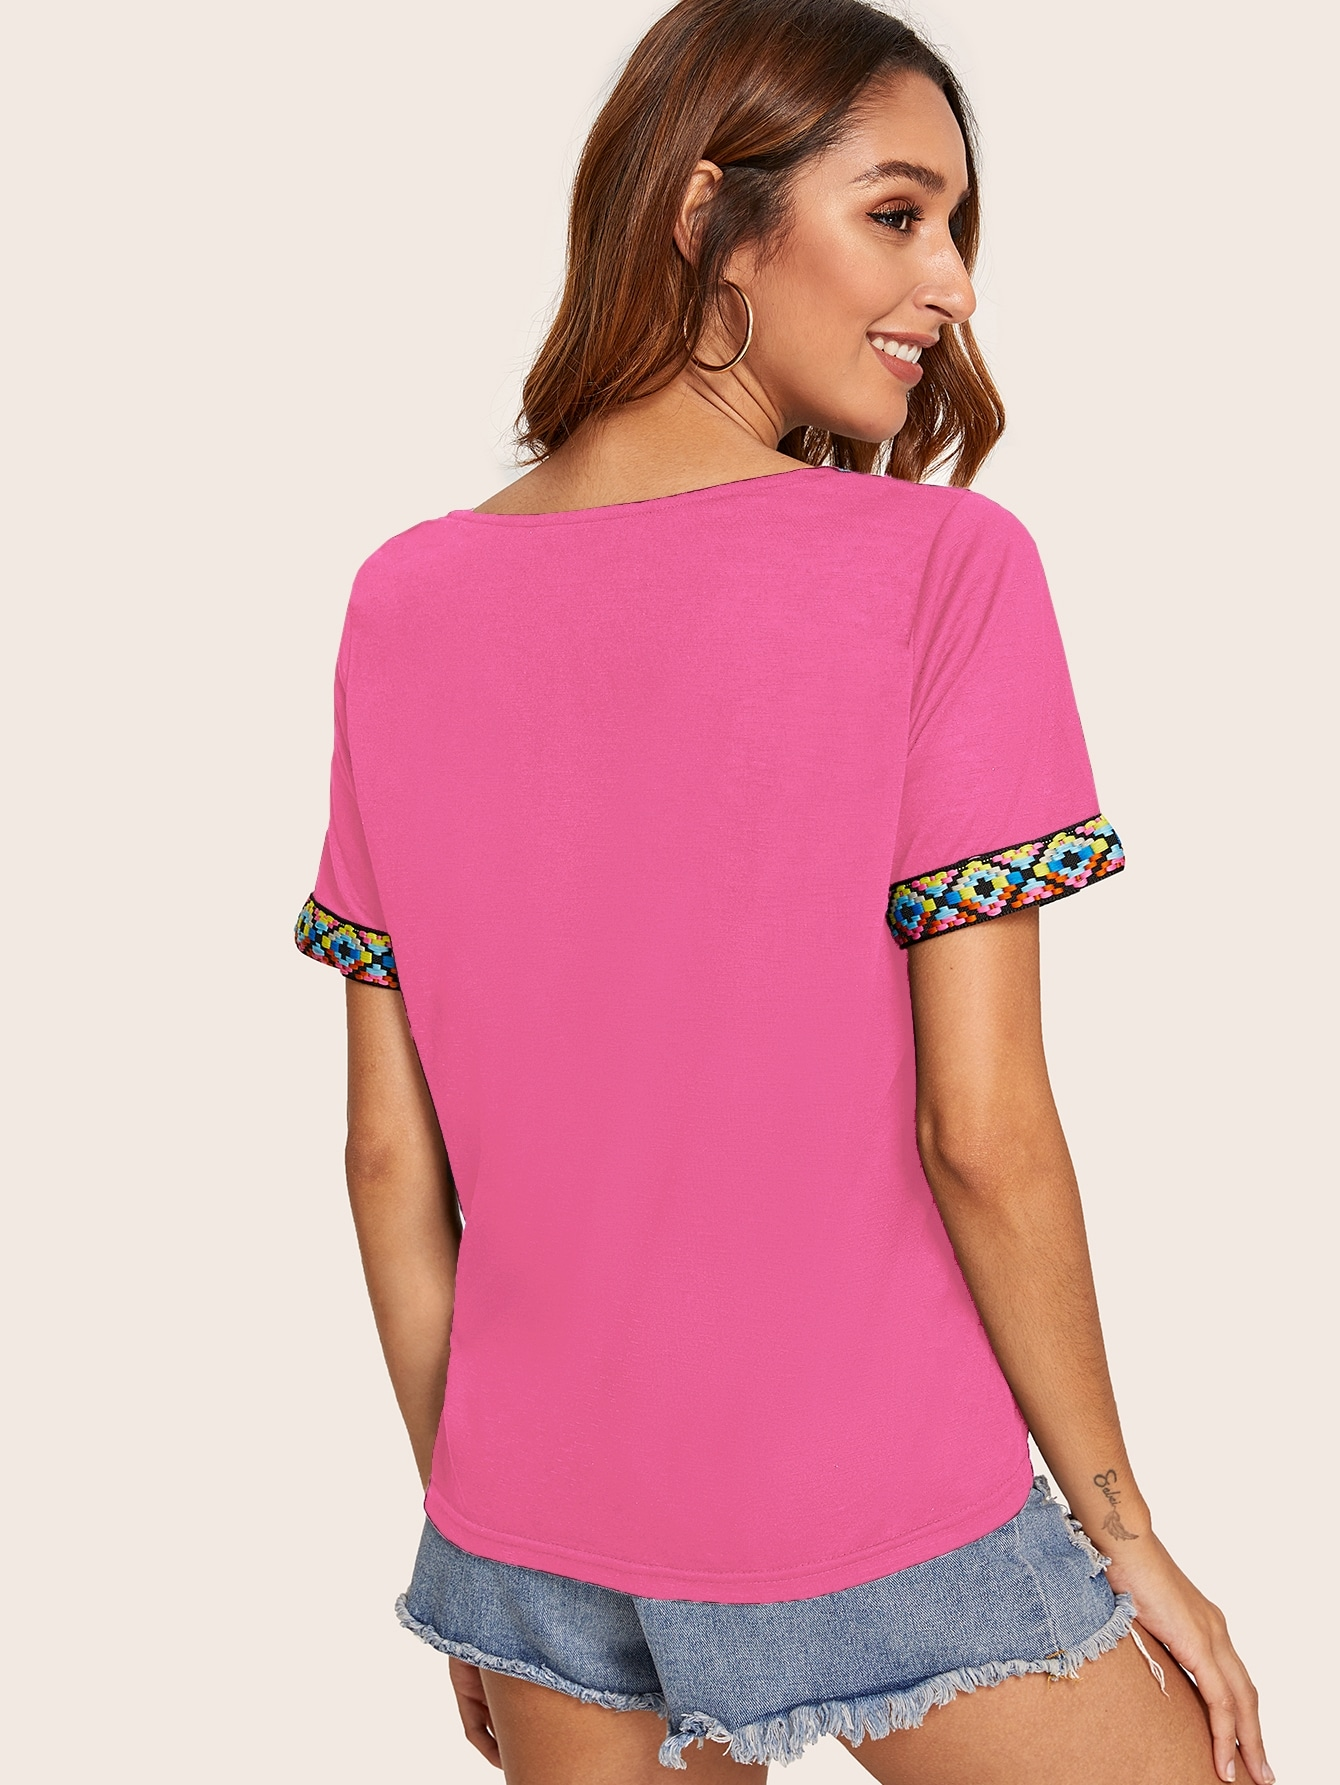 Contrast Tape Neck and Cuff Top